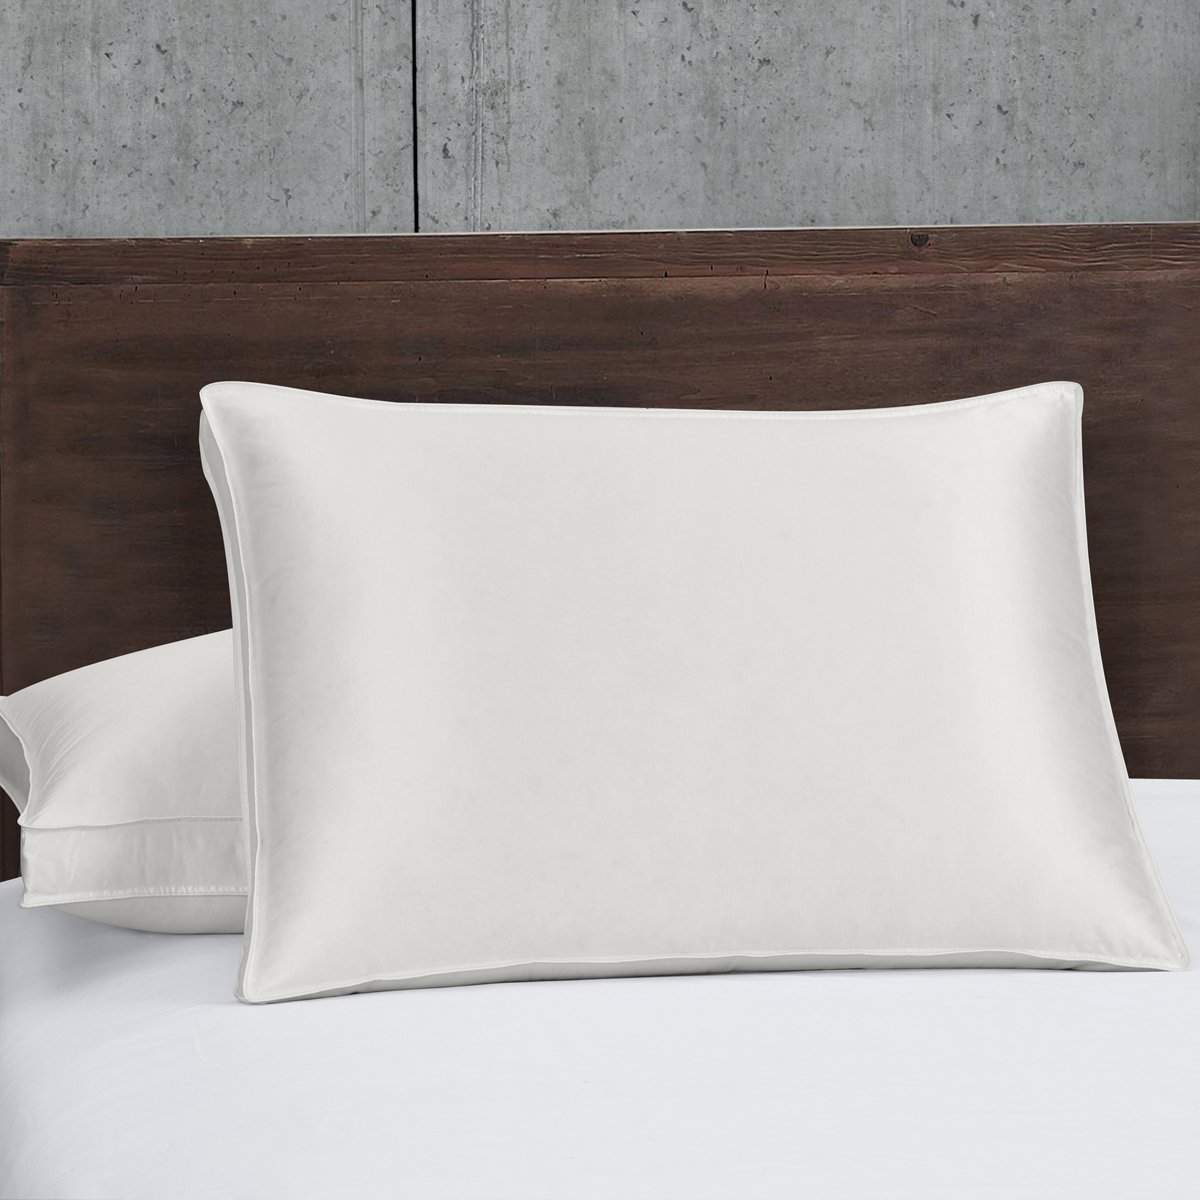 Set of Two Standard/Queen Silk Goose Down Pillow 700 Fill Power Firm Support 100% White Goose down Pillows